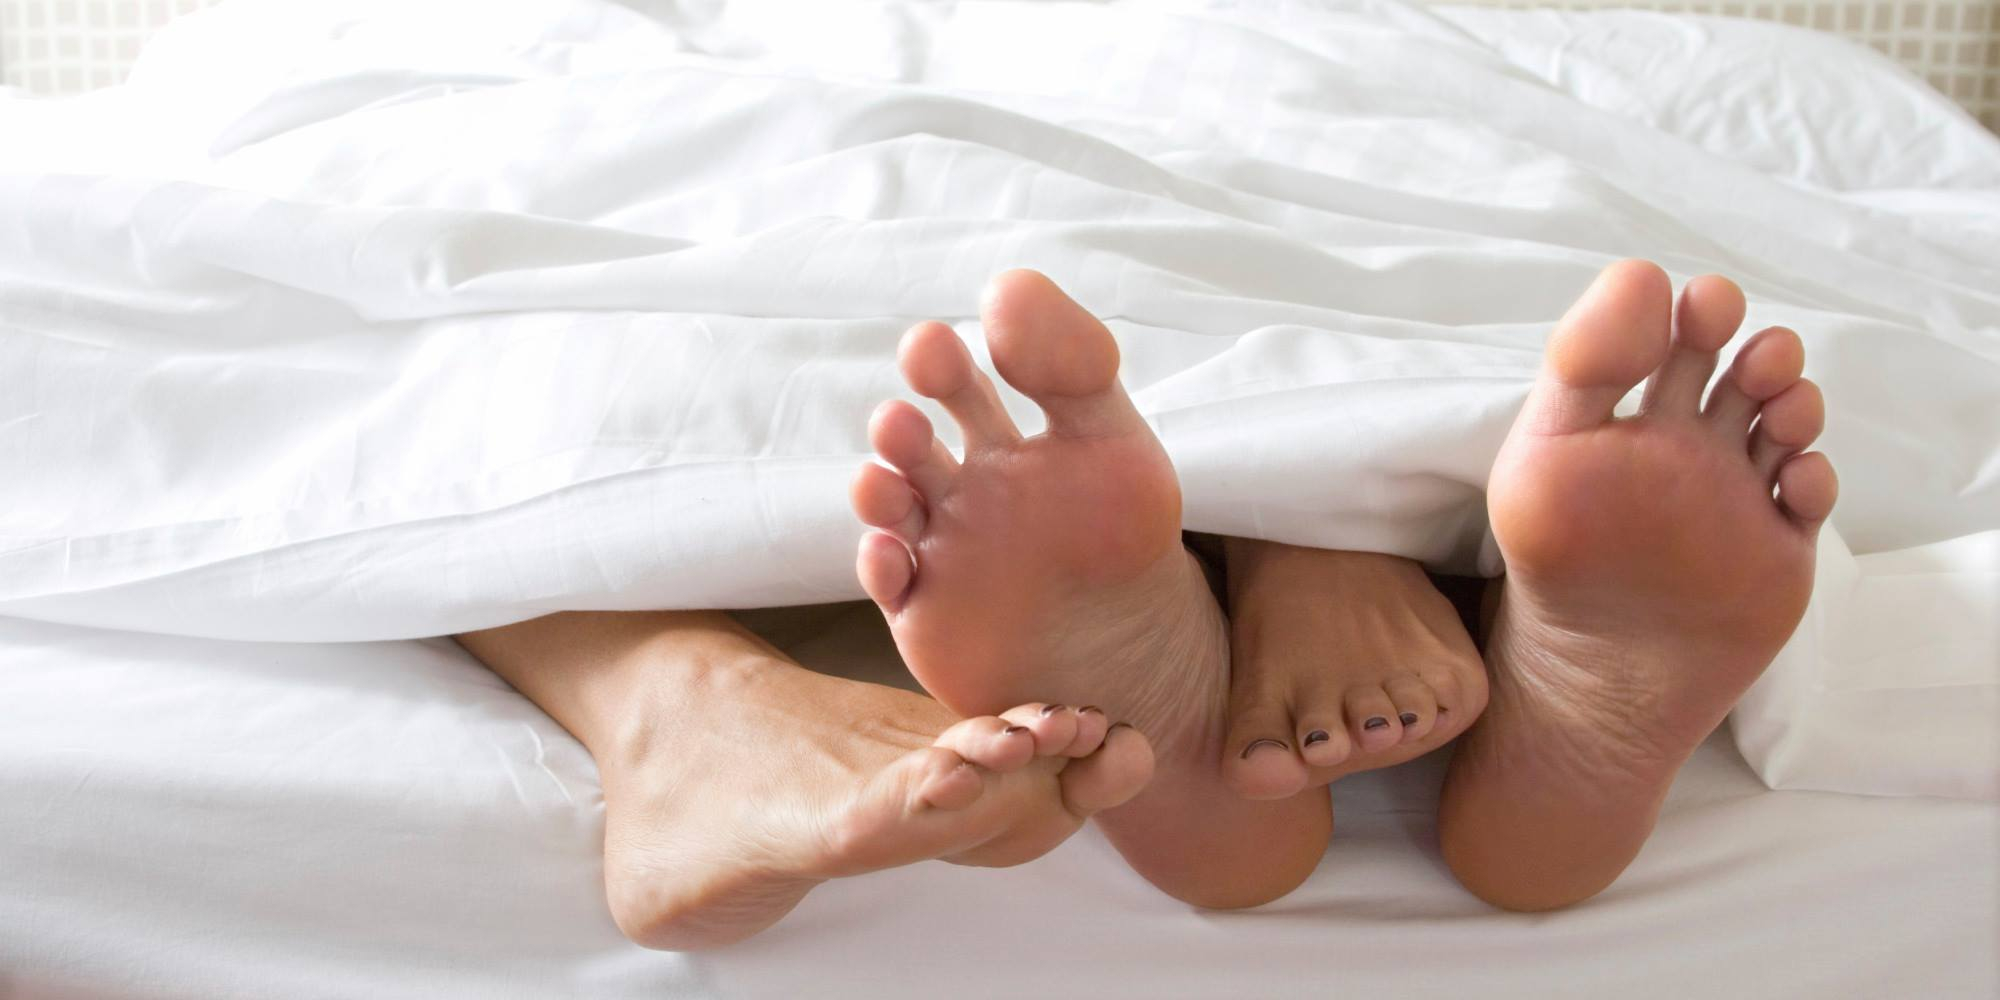 A couple in bed, with just their feet showing and white sheets